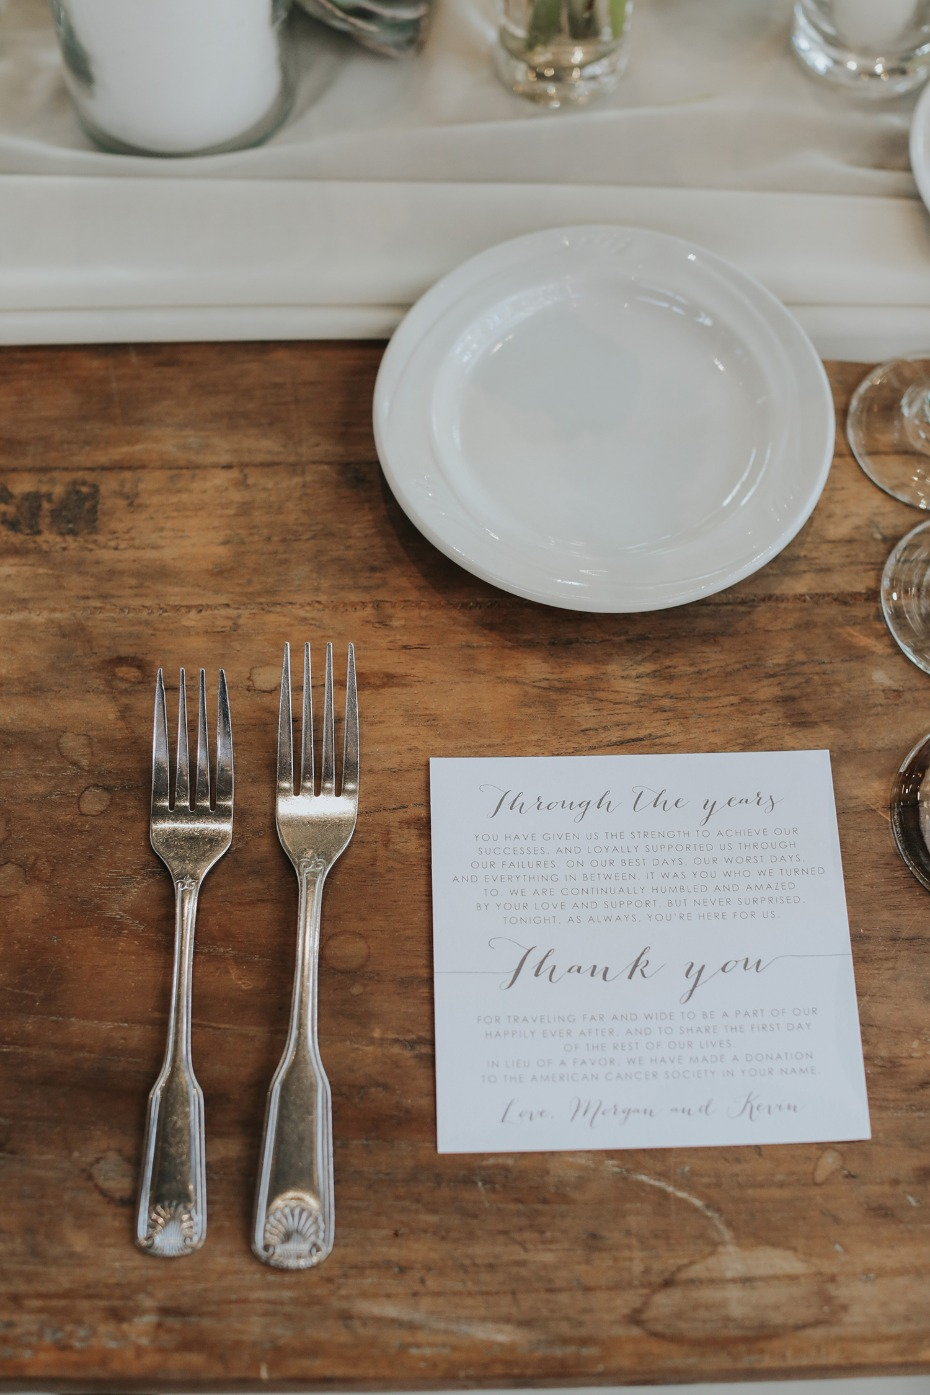 thank you cards from the bride and groom